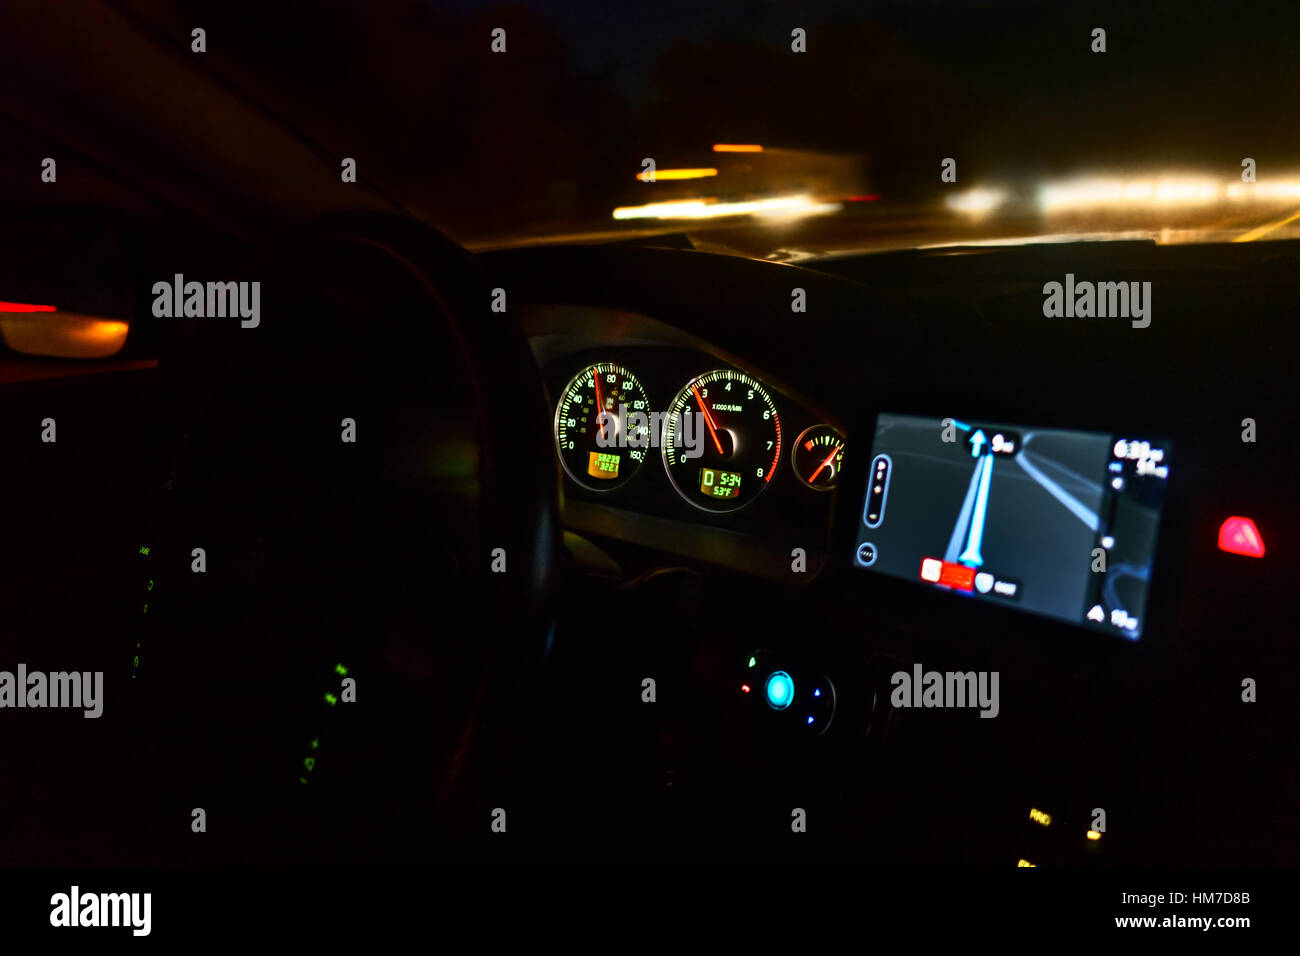 Dashboard of car on highway at night - Stock Image